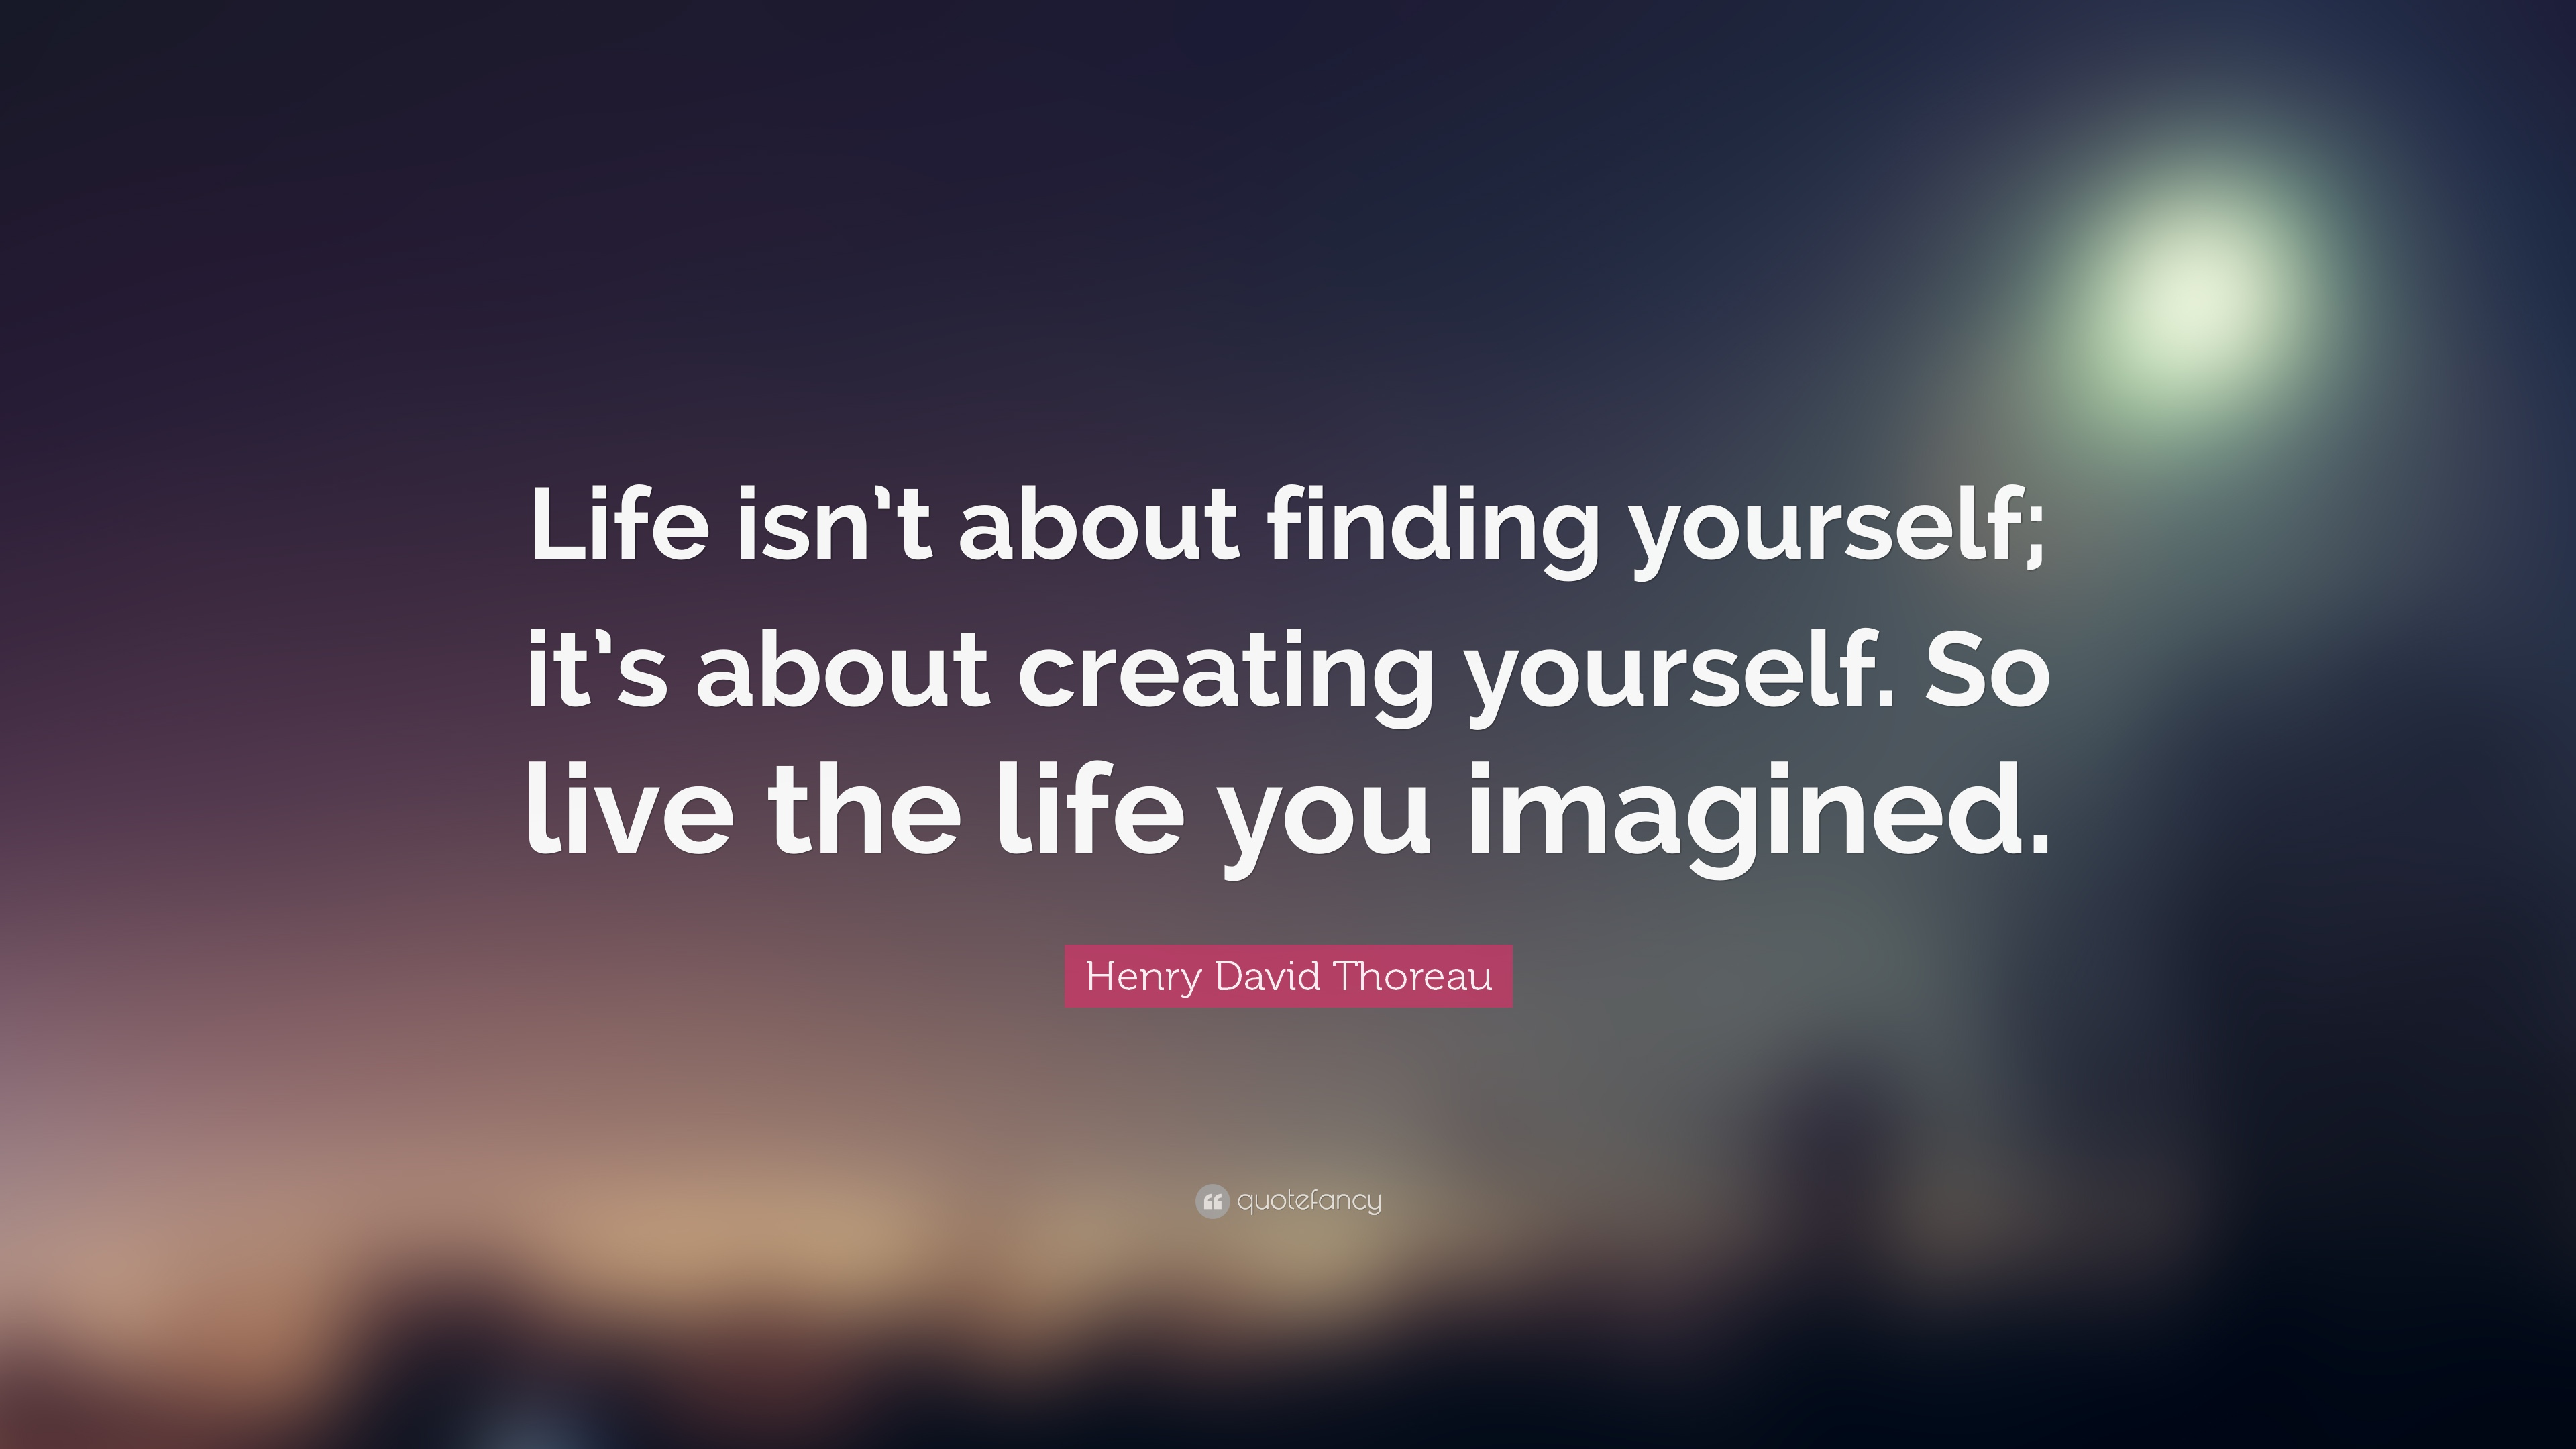 Henry David Thoreau Quote Life Isn T About Finding Yourself It S